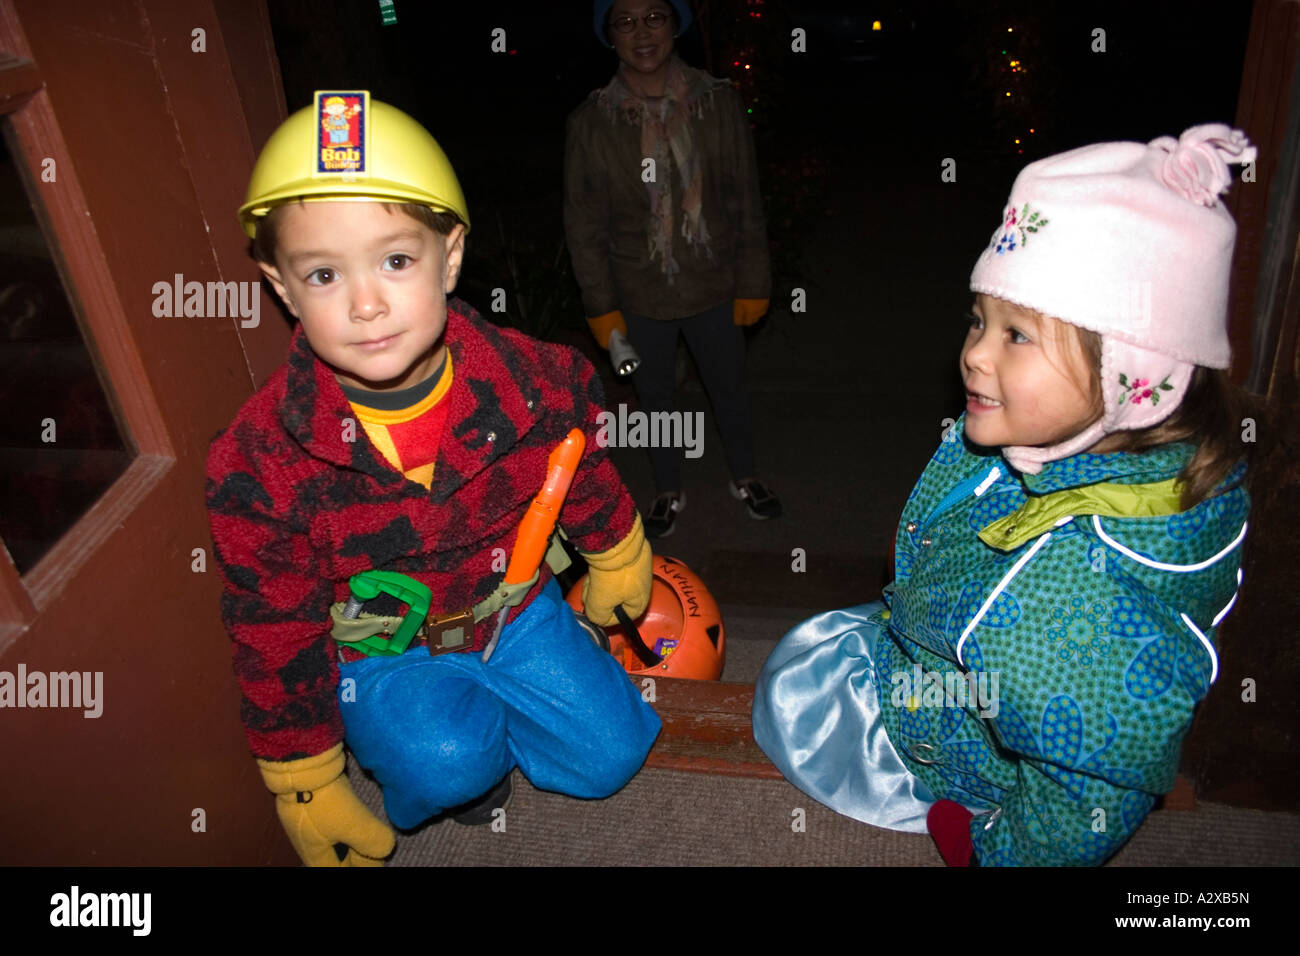 Halloween trick or treaters Asian children in costume as Bob the Builder age 2 or 3  sc 1 st  Alamy & Bob The Builder Stock Photos u0026 Bob The Builder Stock Images - Alamy